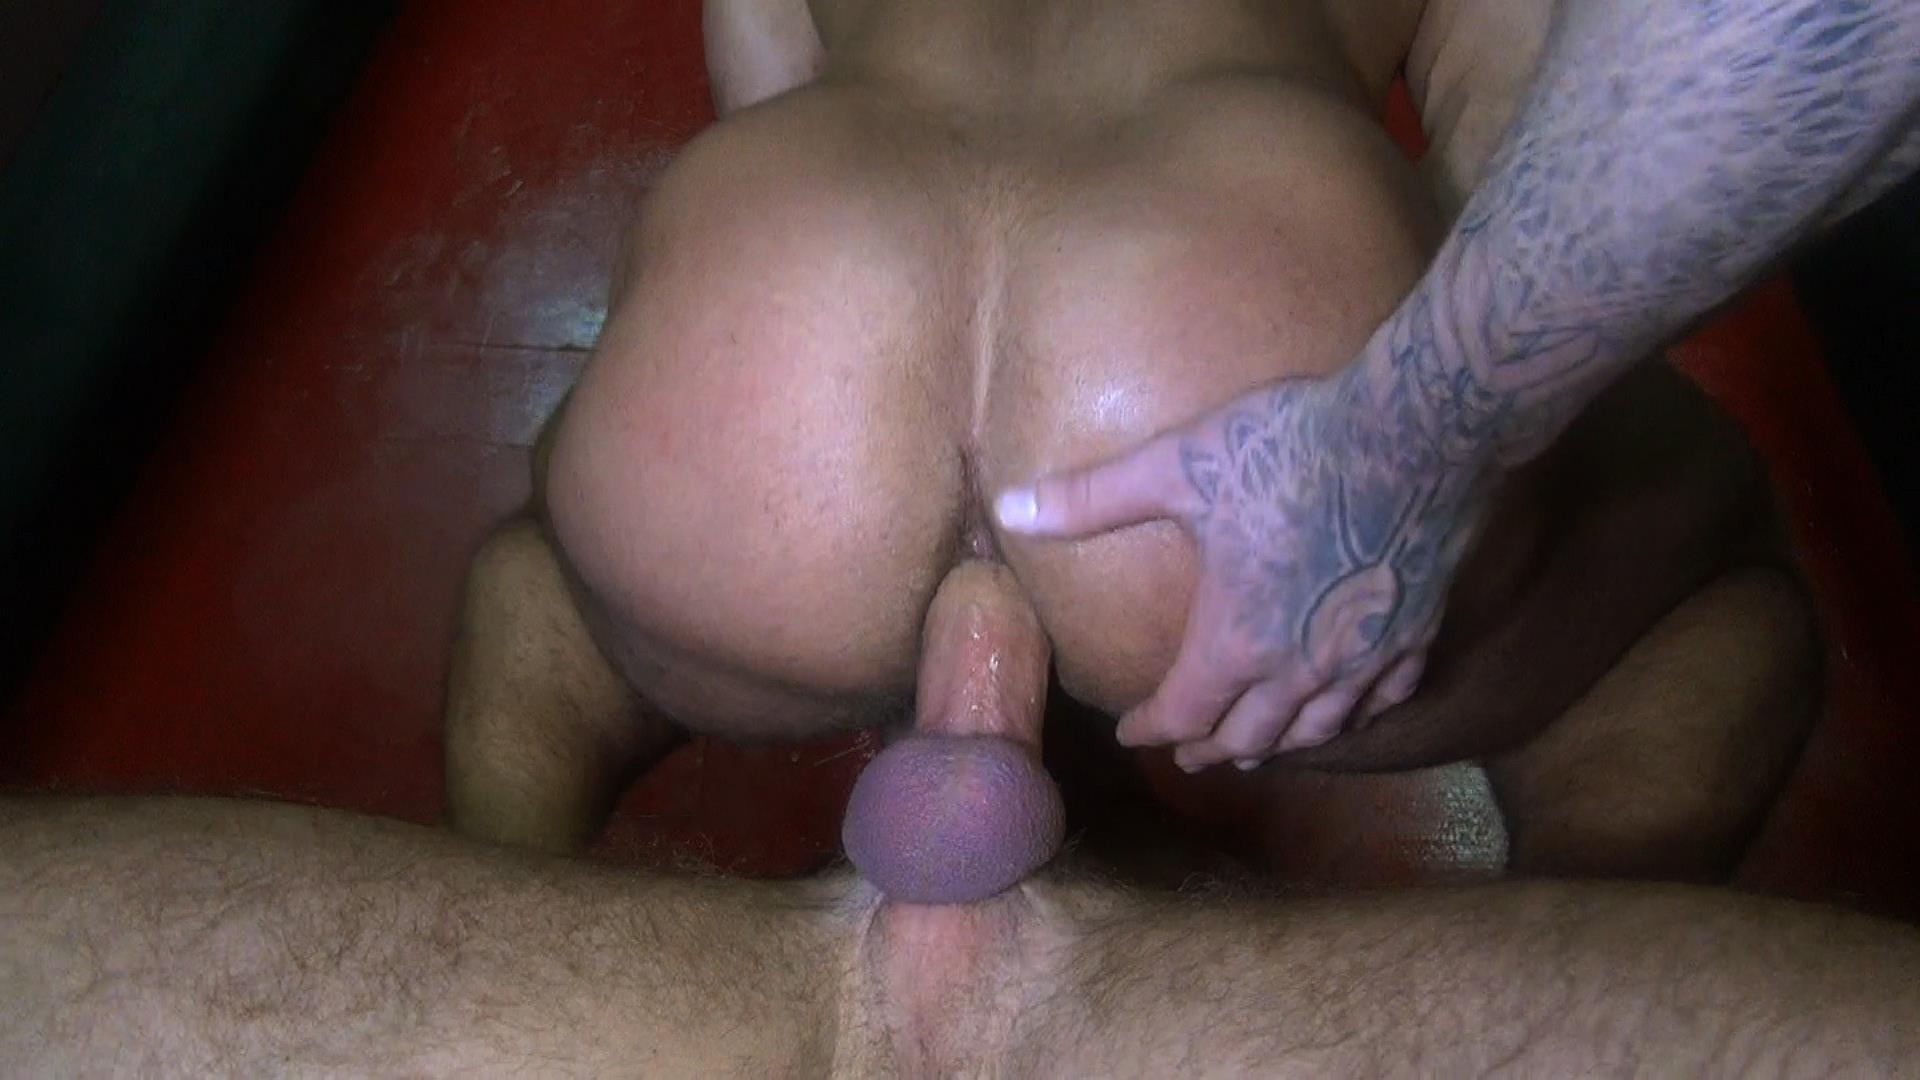 Raw-Fuck-Club-Dylan-Strokes-and-Scott-DeMarco-and-Jack-Andy-and-Jessie-Colter-and-Teddy-Bryce-Bareback-Sex-Video-03 Jessie Colter's First Bareback Gangbang At A Sleazy Bathhouse